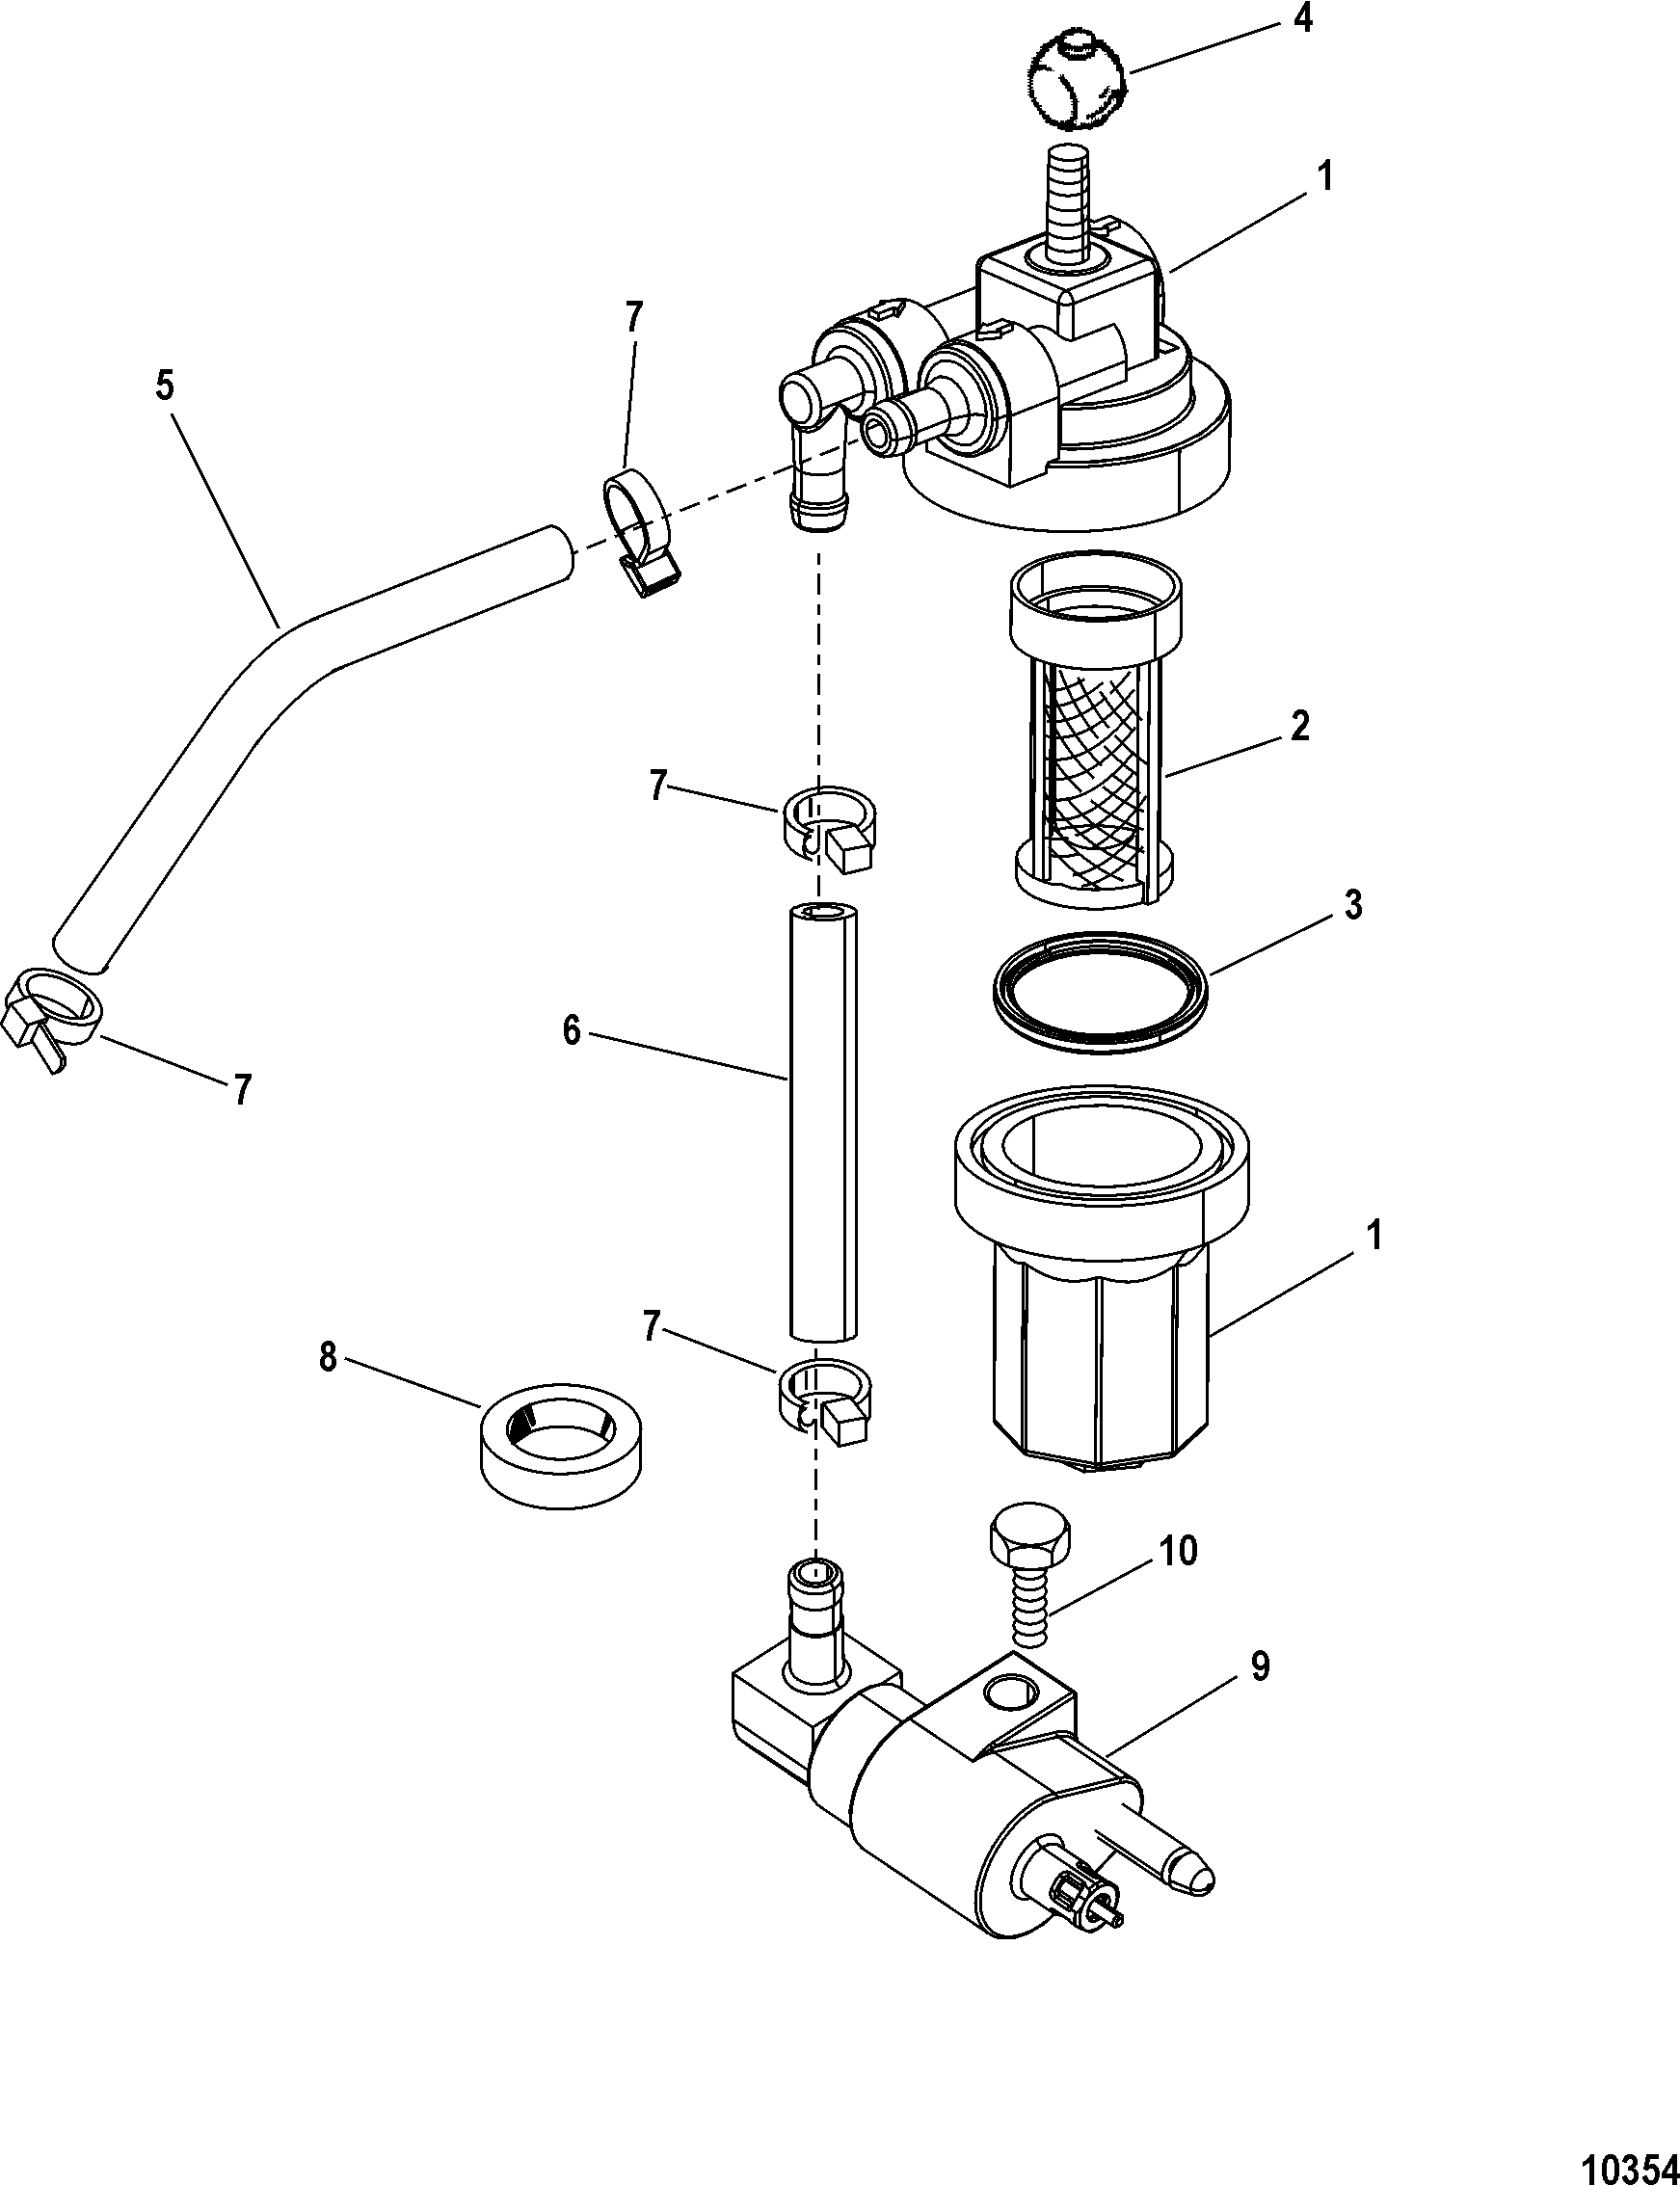 Fuel Filter Assembly(USA-1B153168/BEL-0P360021 and Up) FOR MARINER / MERCURY  8/9.9/13.5/15 (2-STROKE)